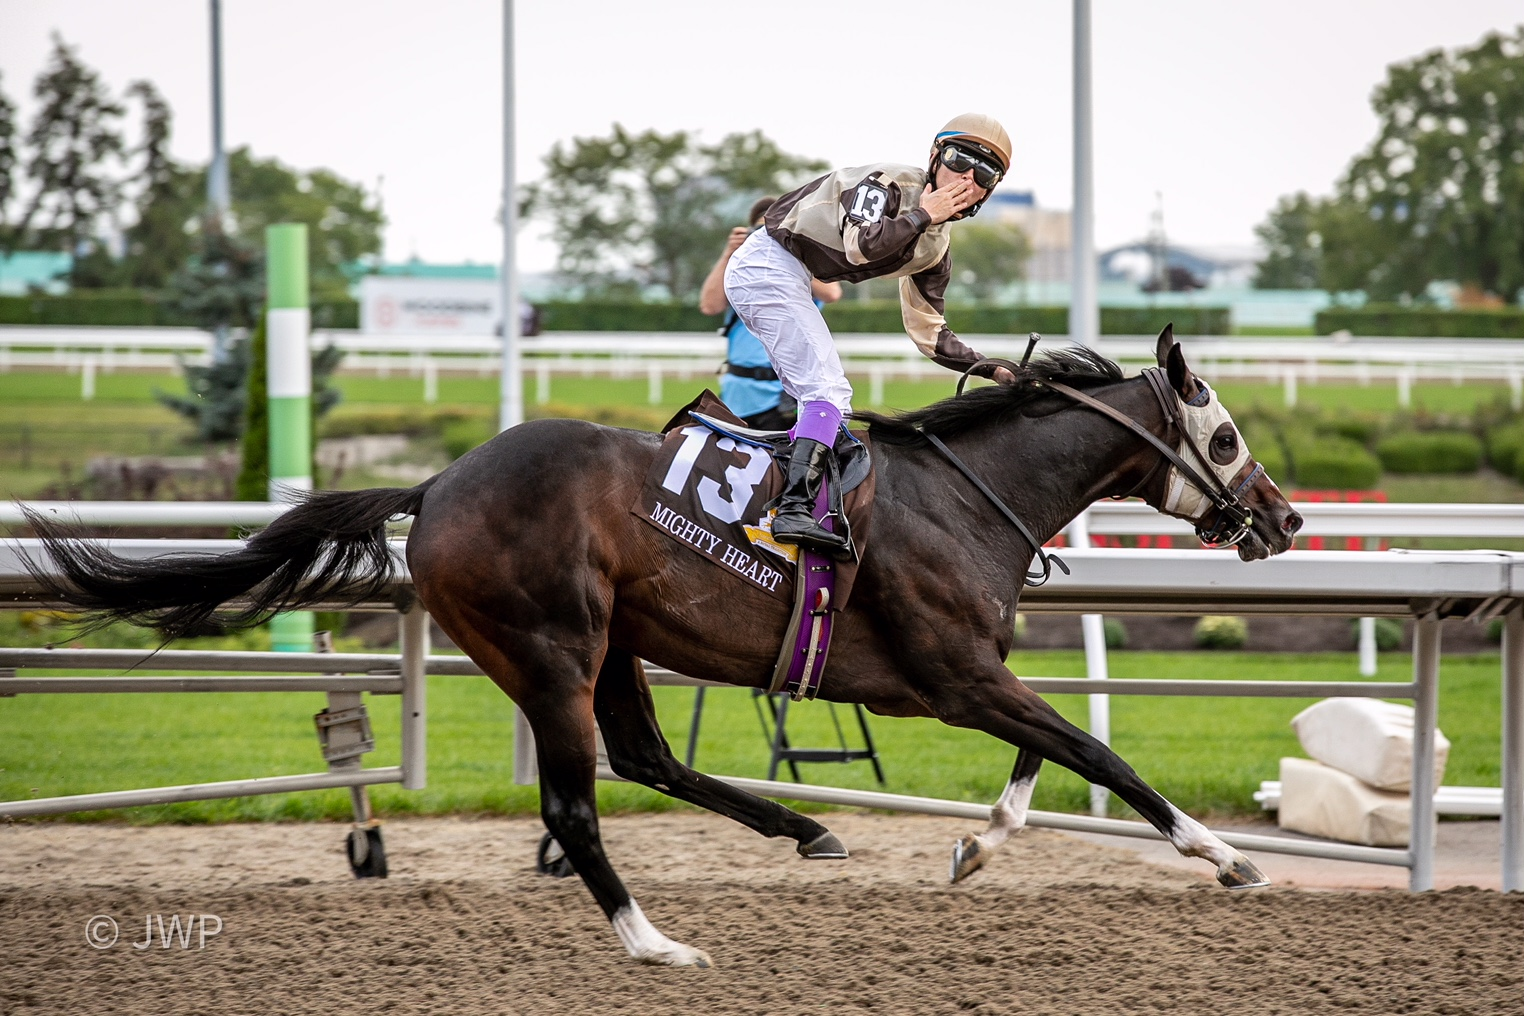 One-eyed Mighty Heart mighty in Queen's Plate triumph, Carroll finishes one-two